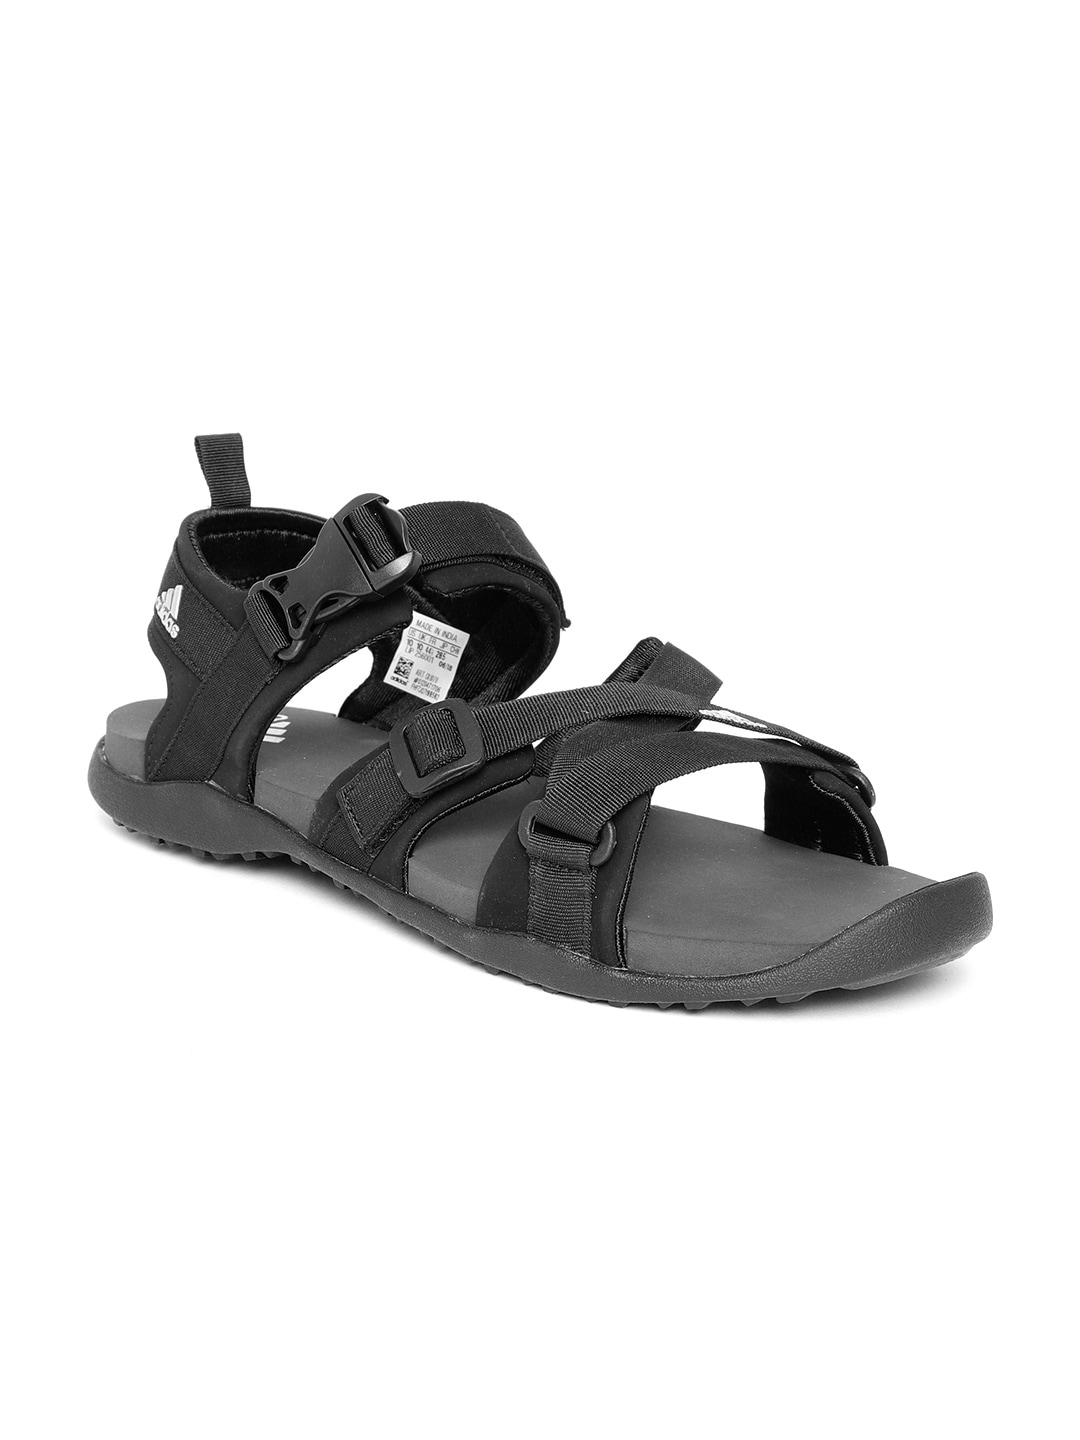 3439cf3cc510 Adidas Sandal Men Sports Sandals - Buy Adidas Sandal Men Sports Sandals  online in India